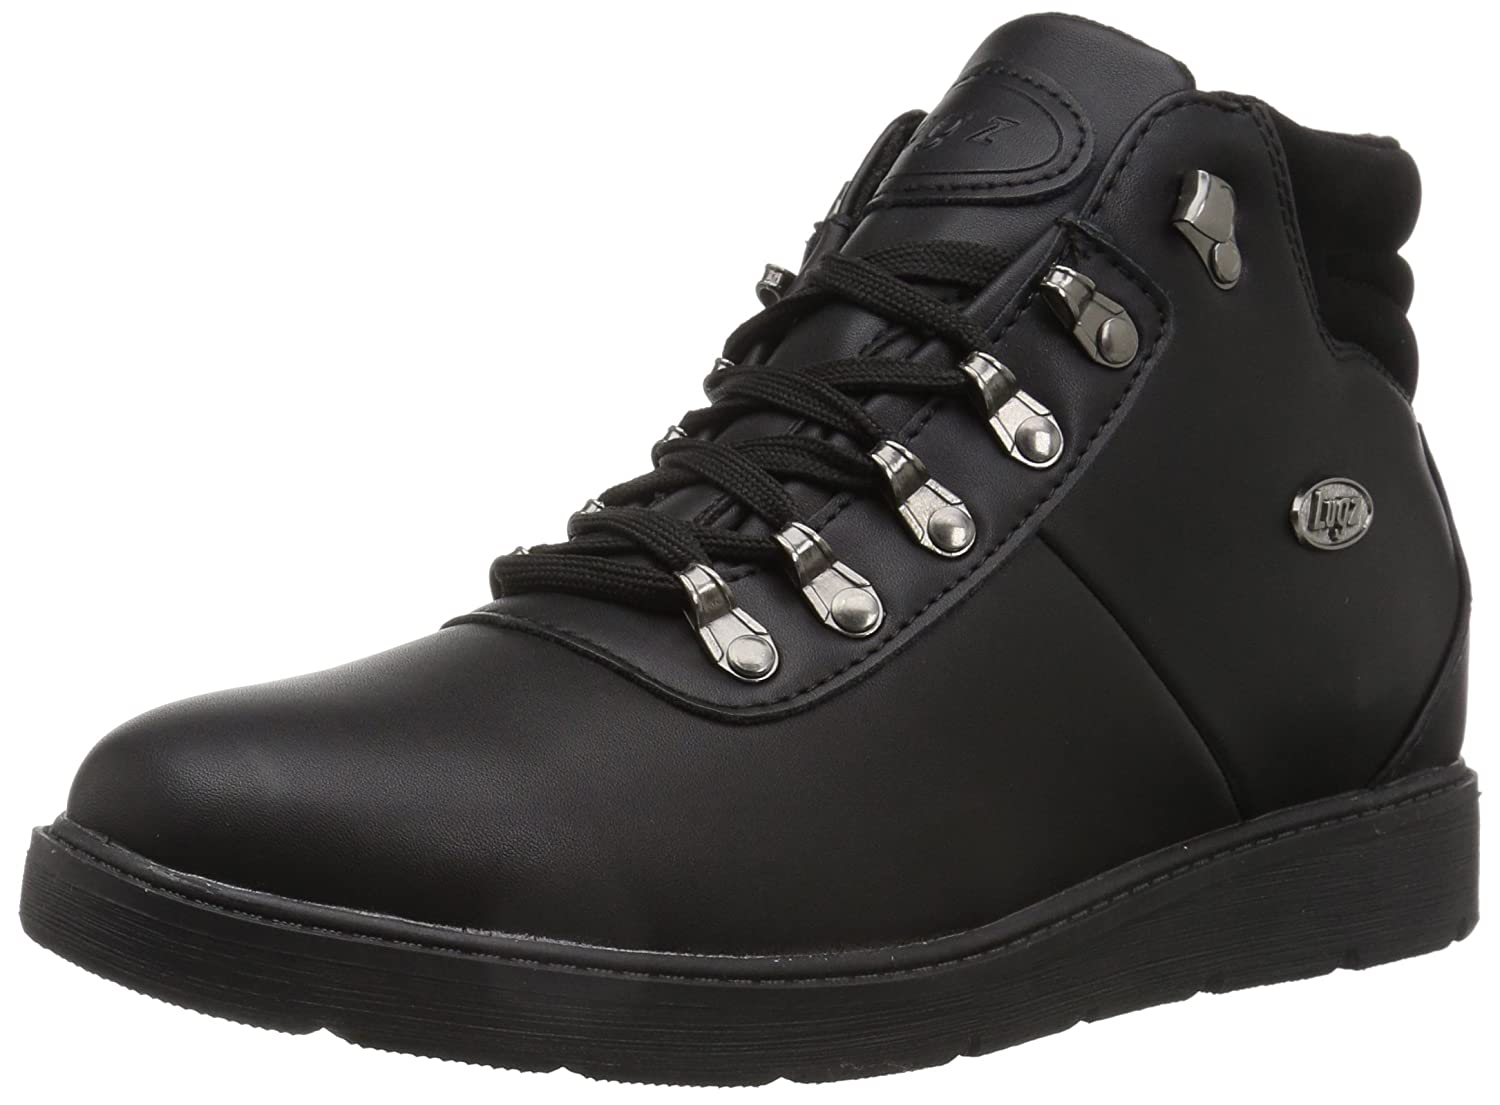 Lugz Women's Theta Fashion Boot B073JW2963 6 B(M) US|Black